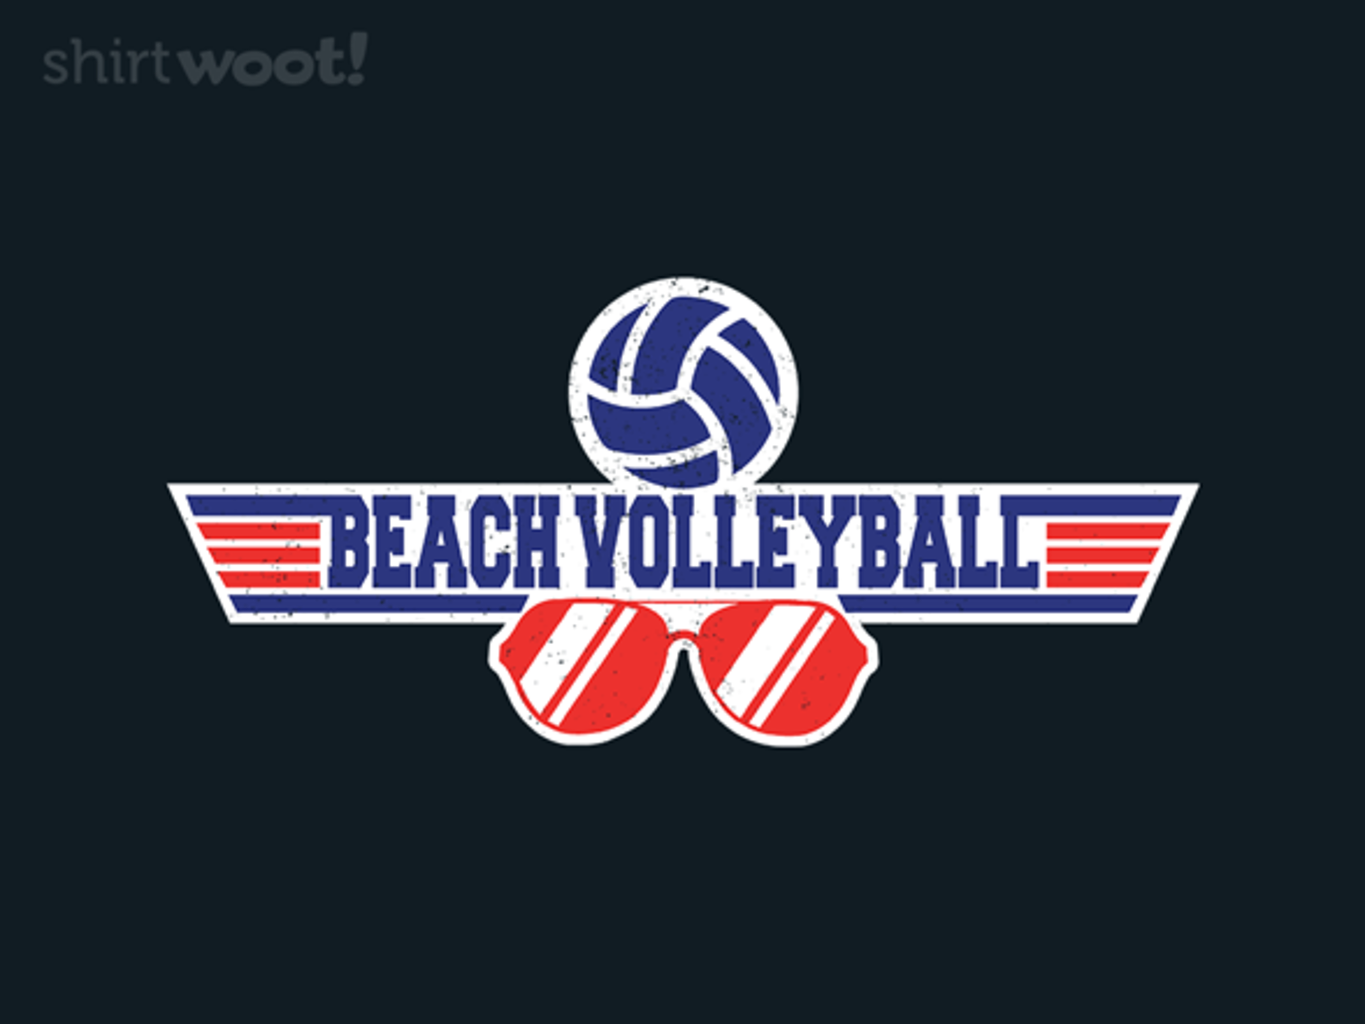 Woot!: Retro Beach Volleyball - $15.00 + Free shipping